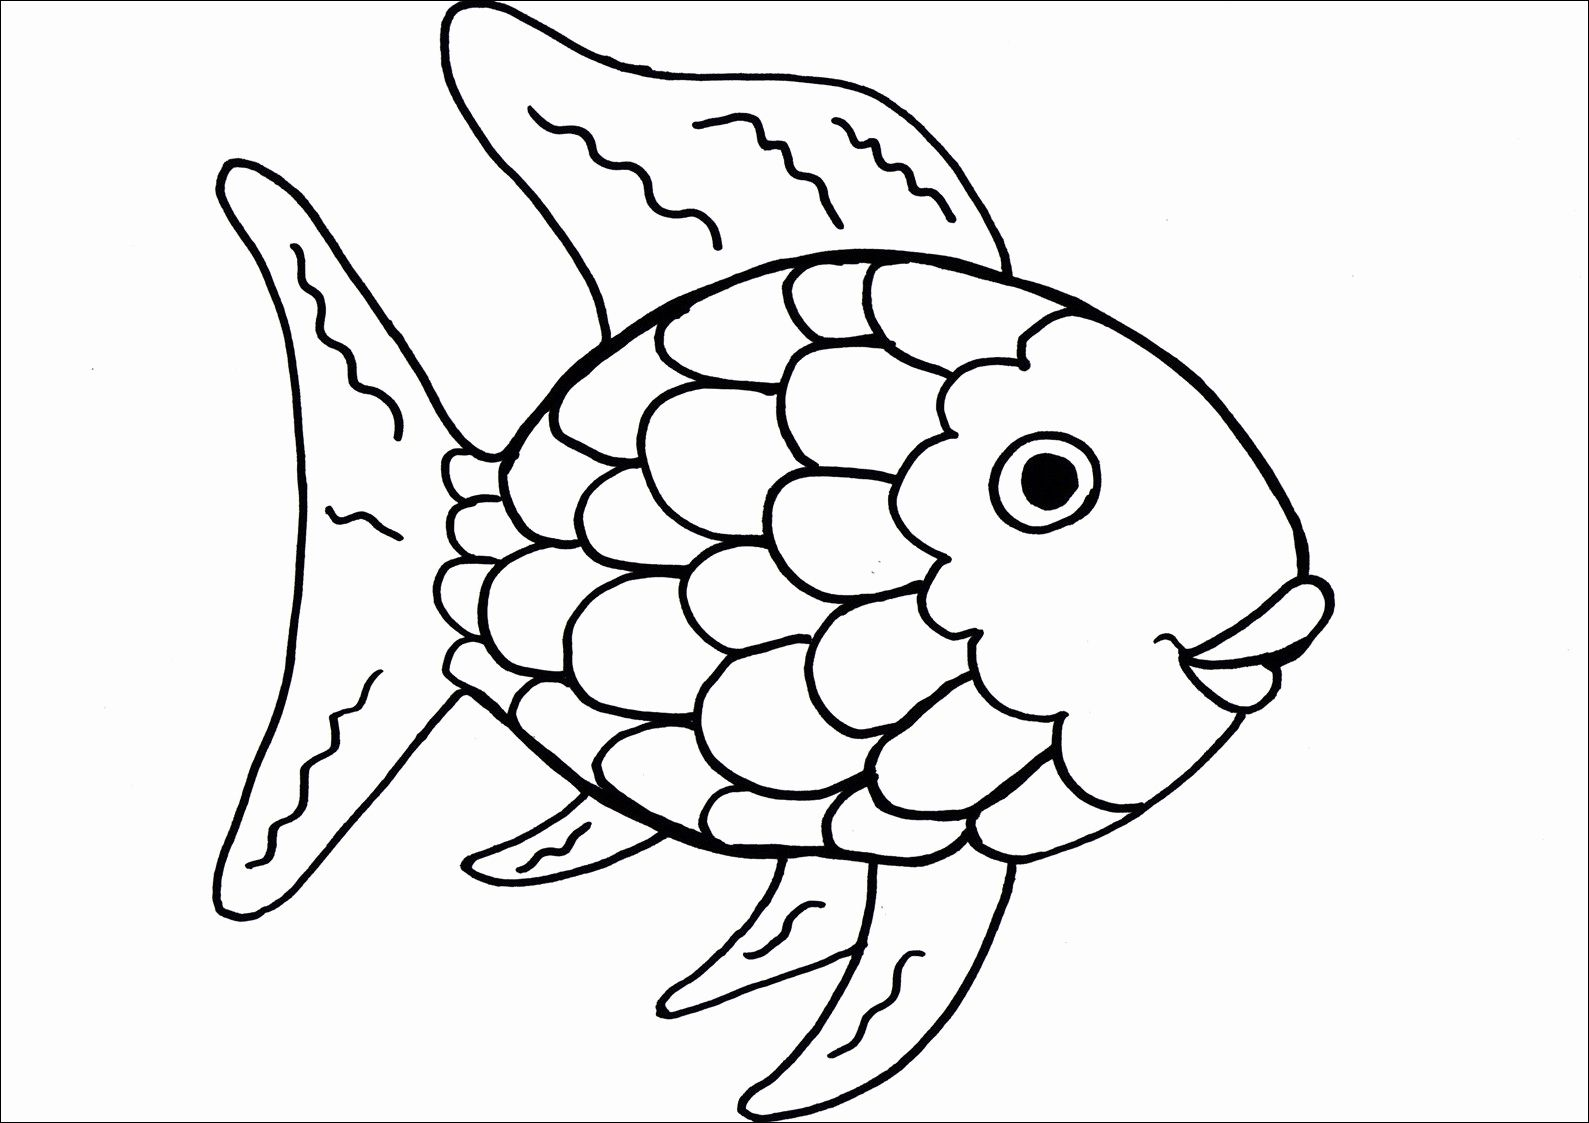 Activity Coloring Sheets Best Of Rainbow Fish Printable Coloring Pages Coloring Page For Kids